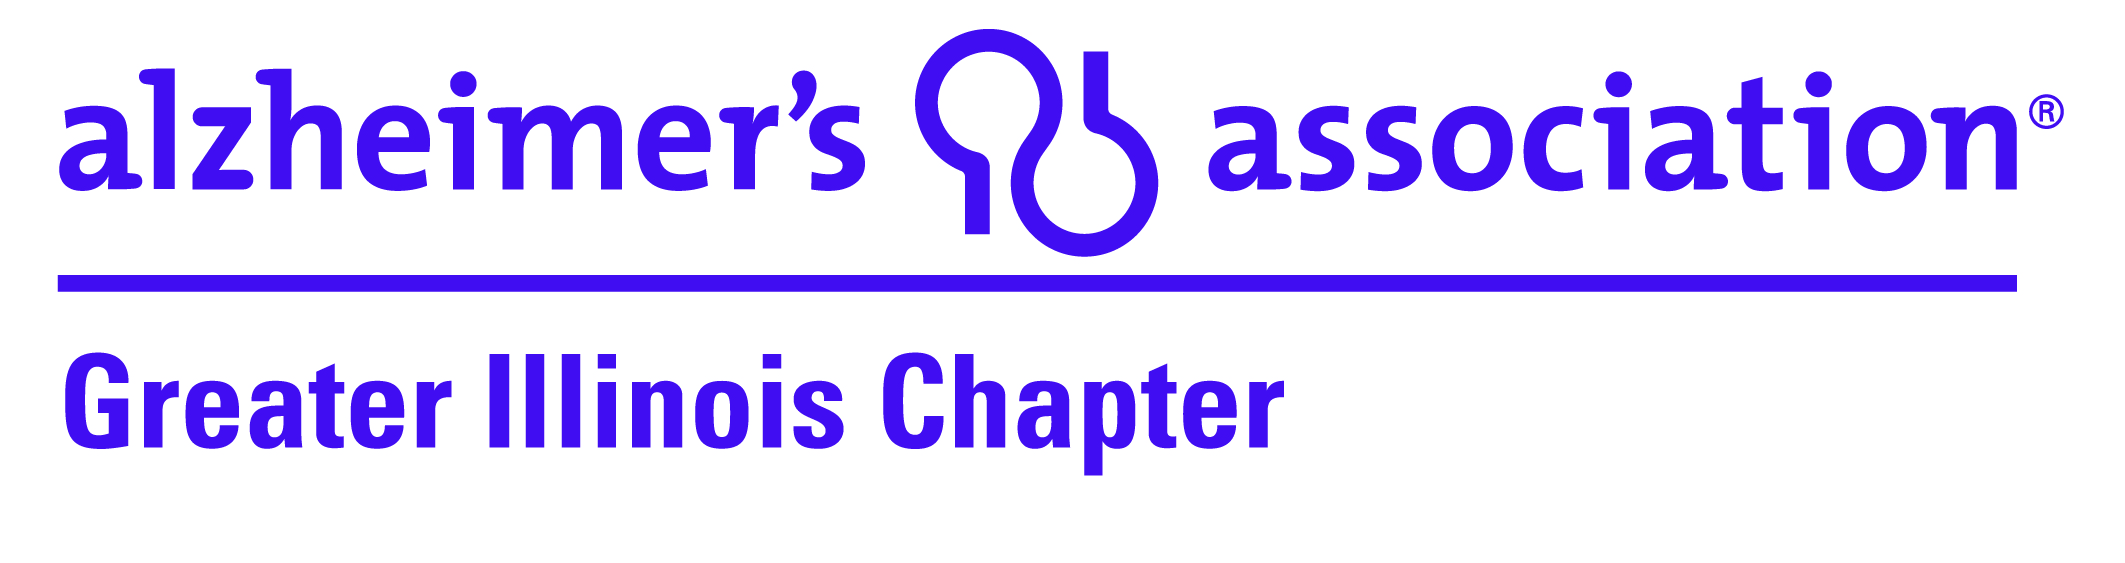 Alzheimer's Association, Greater Illinois Chapter